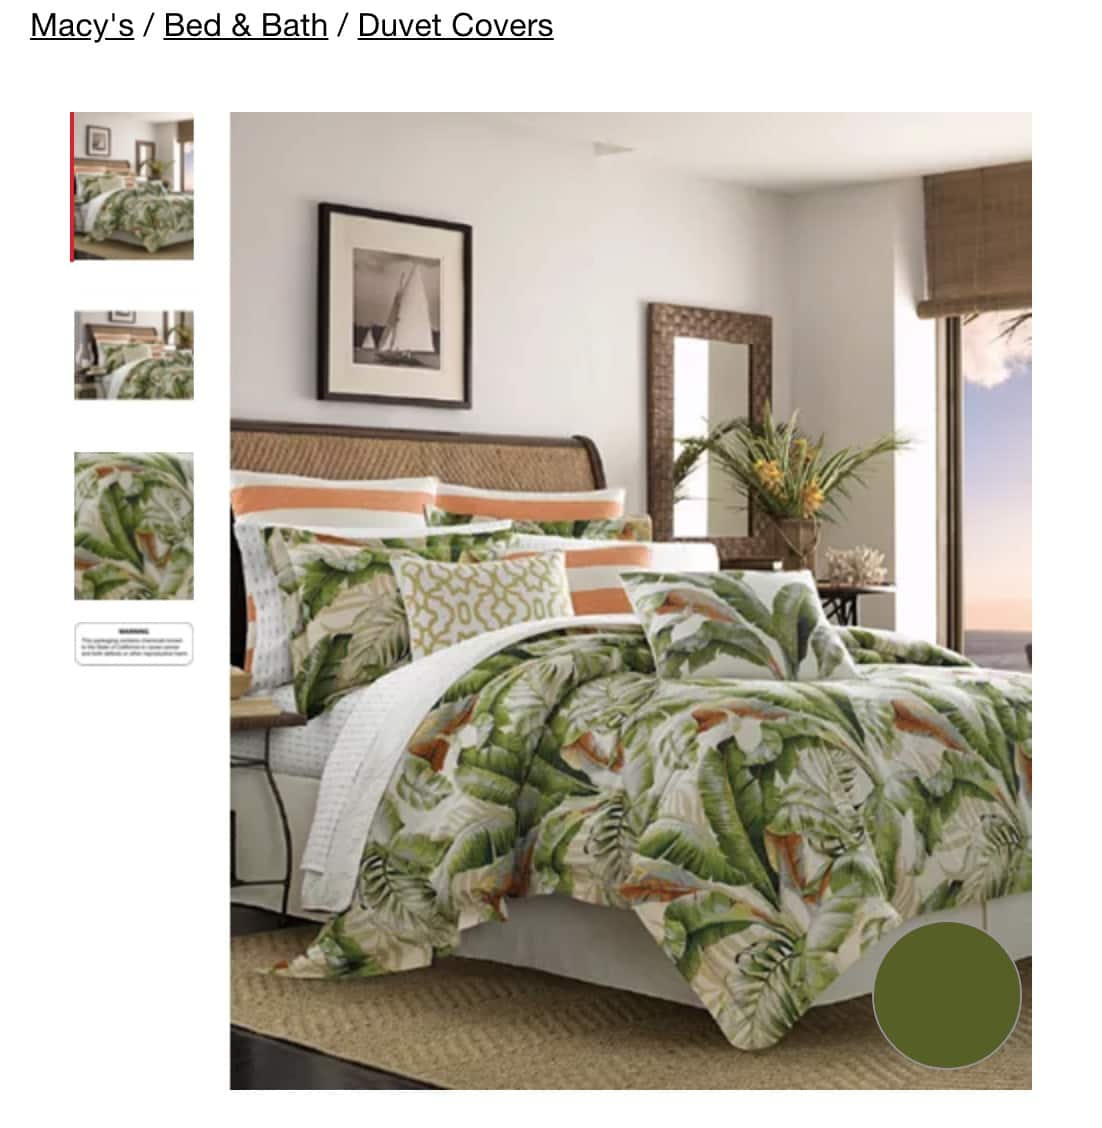 3-Pece Tommy Bahama Cotton Duvet Sets: Palmier Green in Full/Queen $75.03, King $93.60 & More + Free Shipping